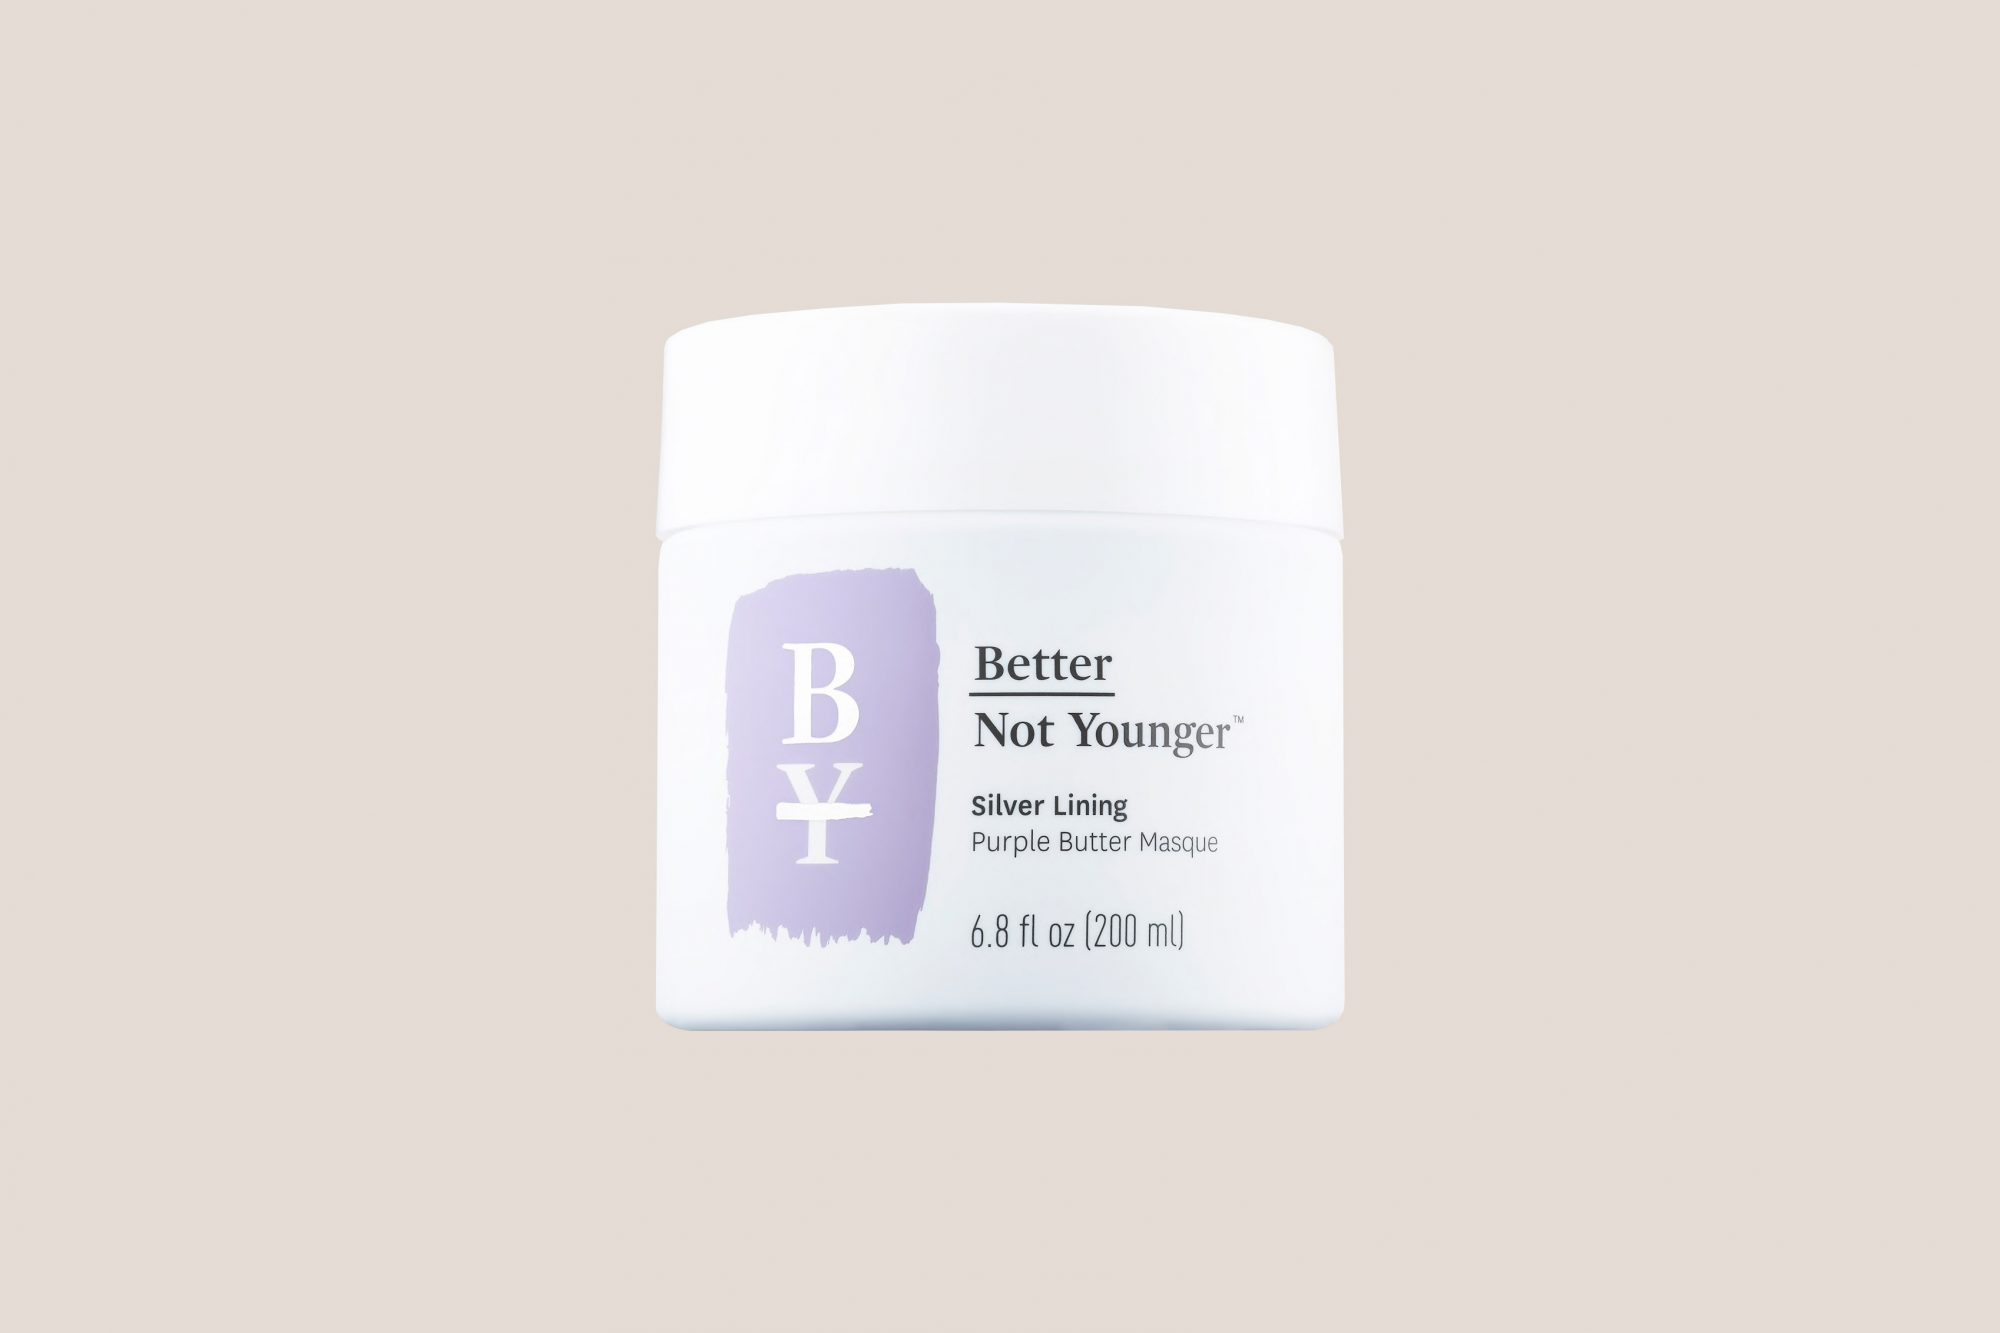 Better Not Younger Silver Lining Purple Butter Masque